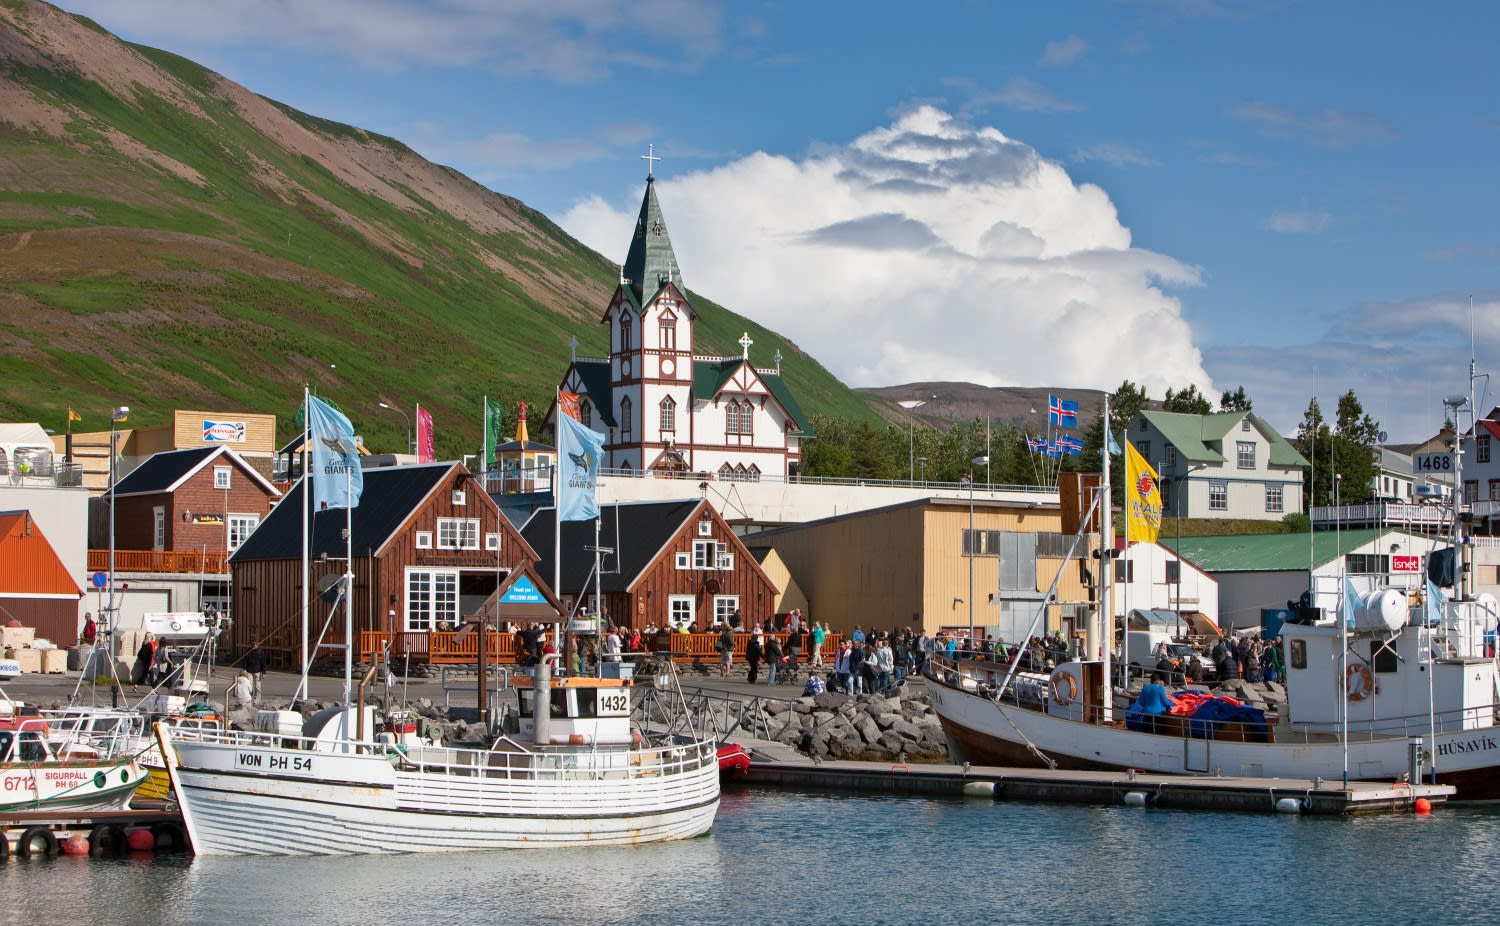 A view of the town of Husavik in North Iceland, pictured from sea